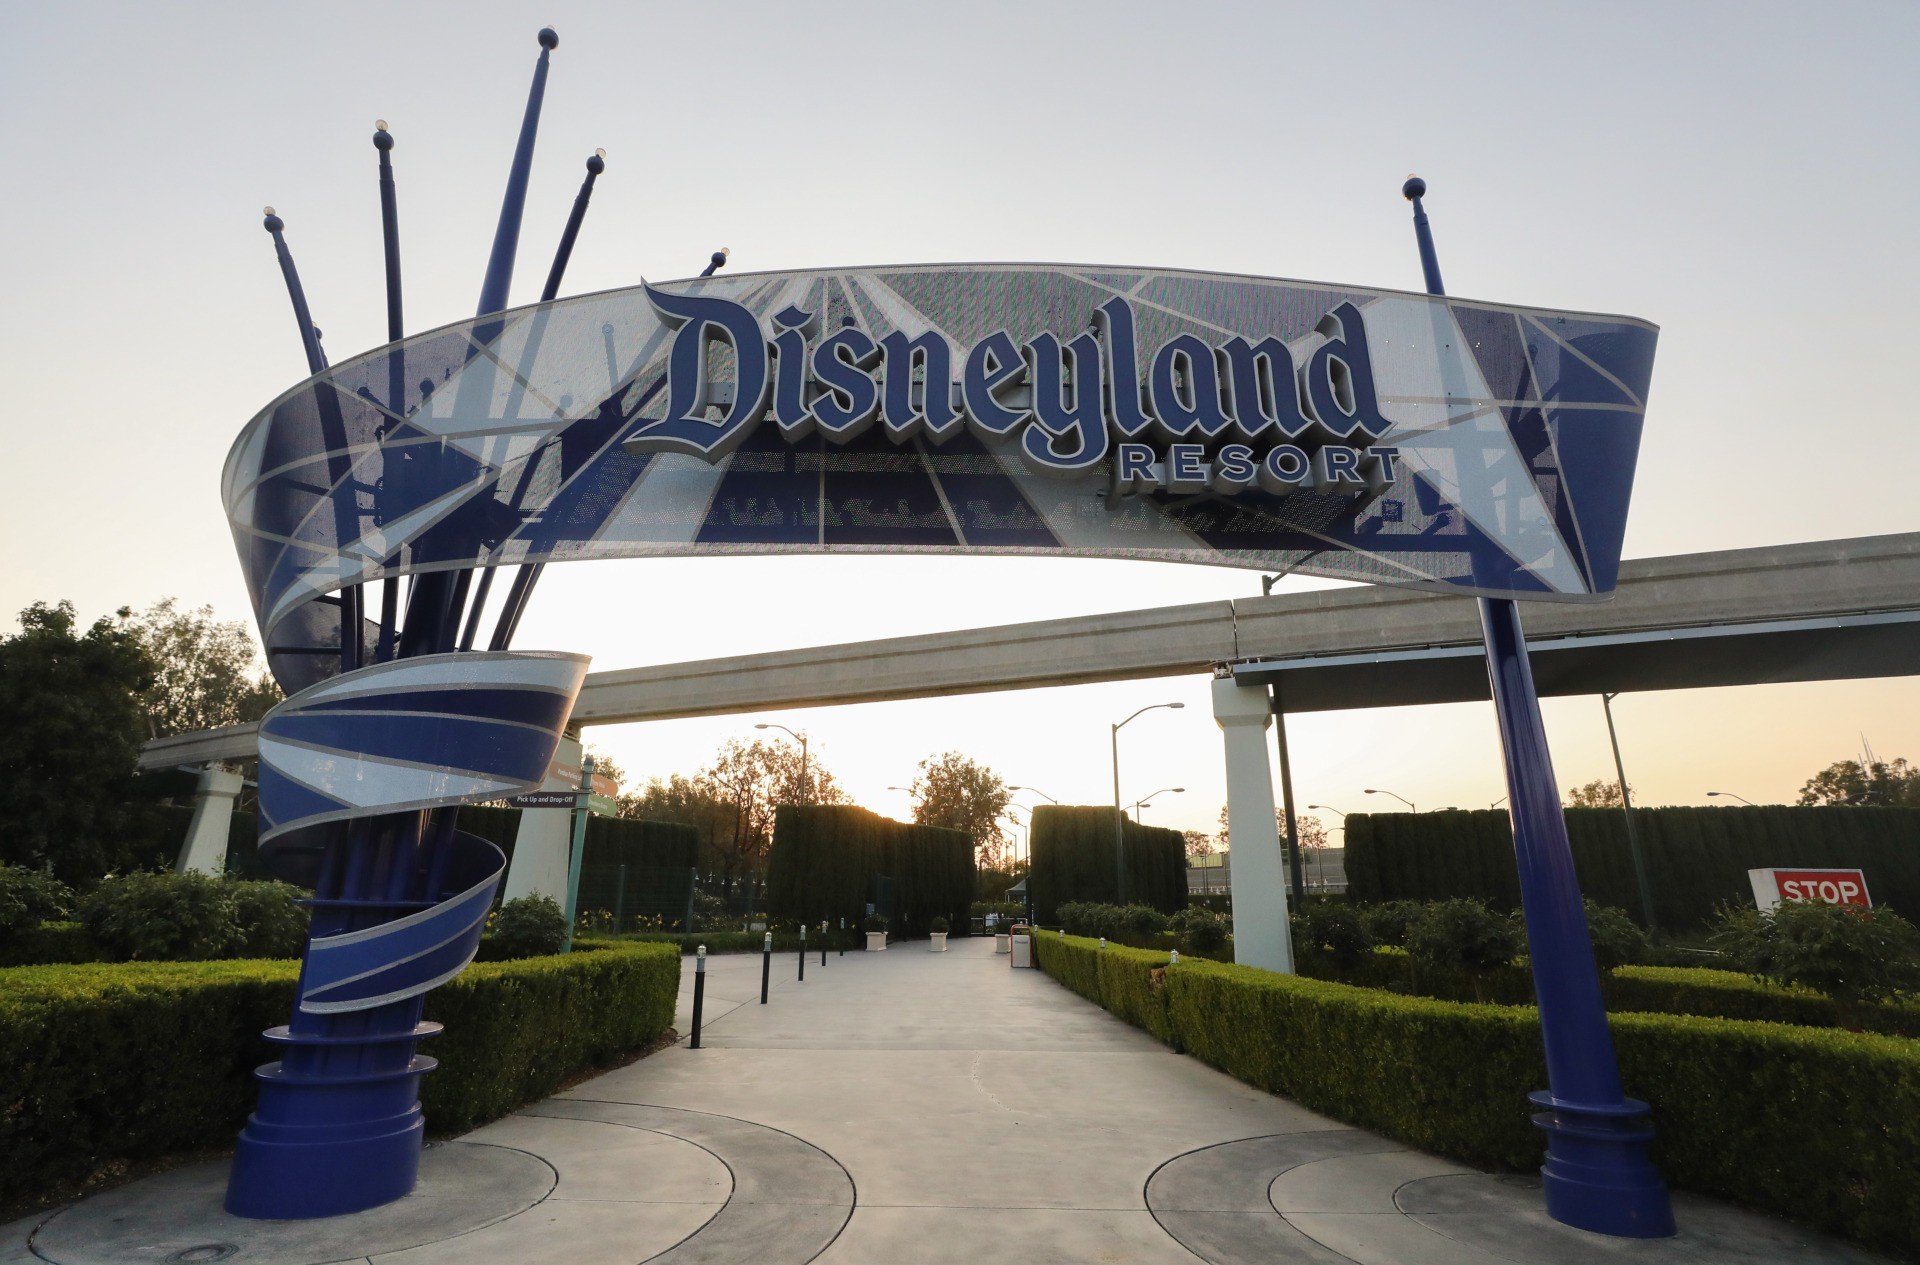 Covid-19: Disneyland will be kept shut for 'foreseeable future'